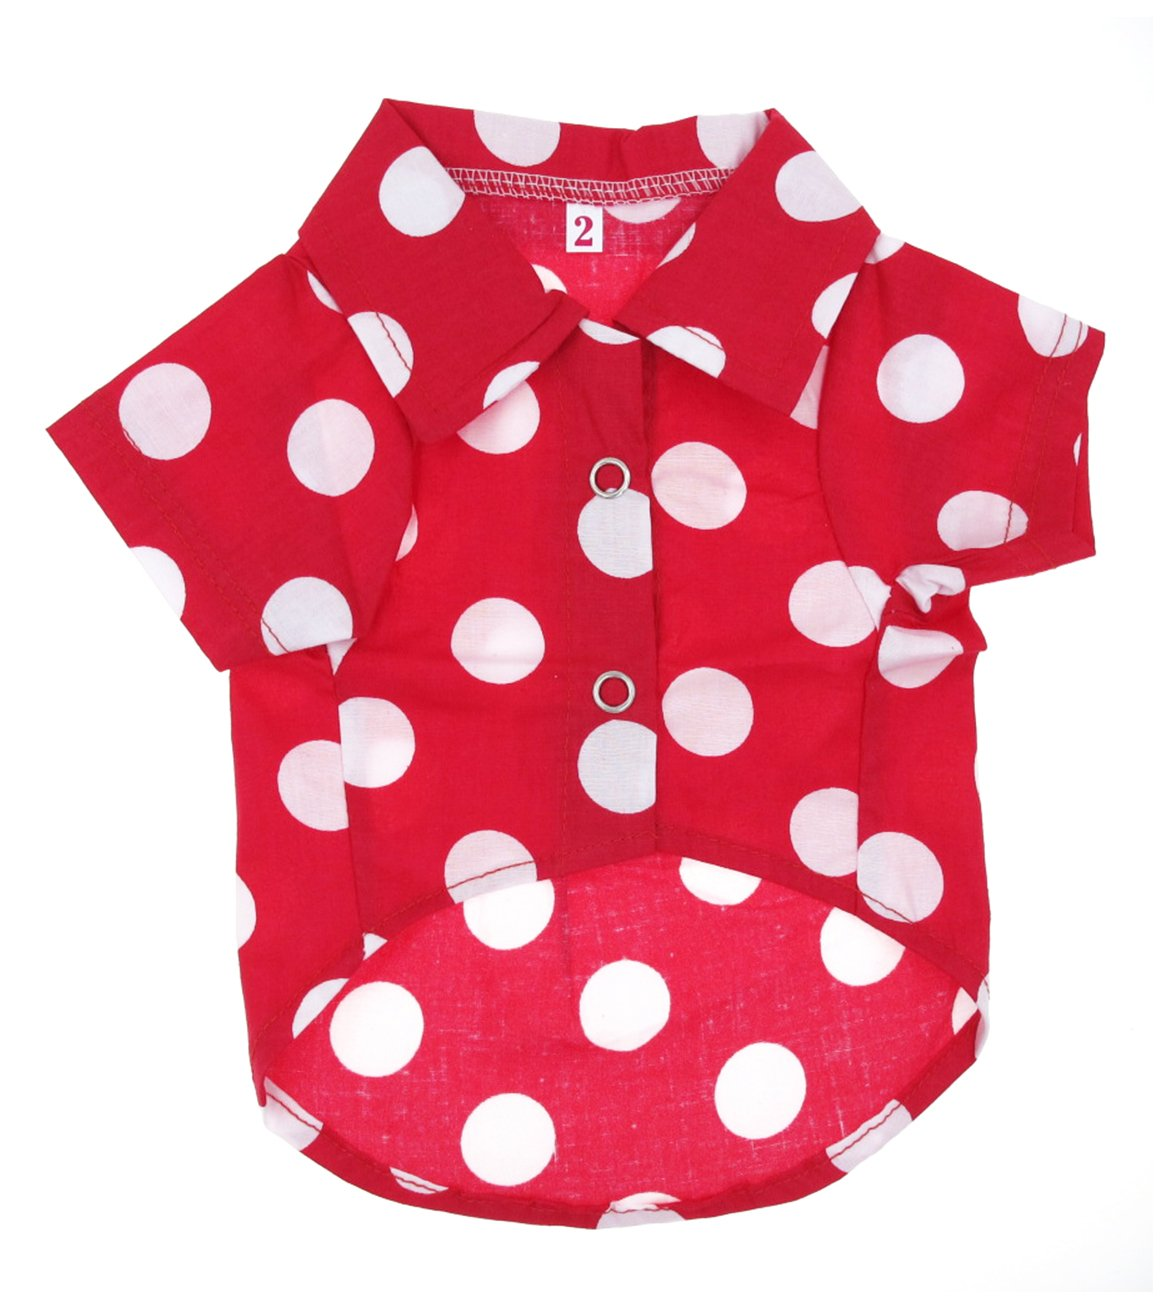 10 Casual Beach Red Polka Dot Shirt Dog Clothes for Cat Dog Puppy Pet (10)